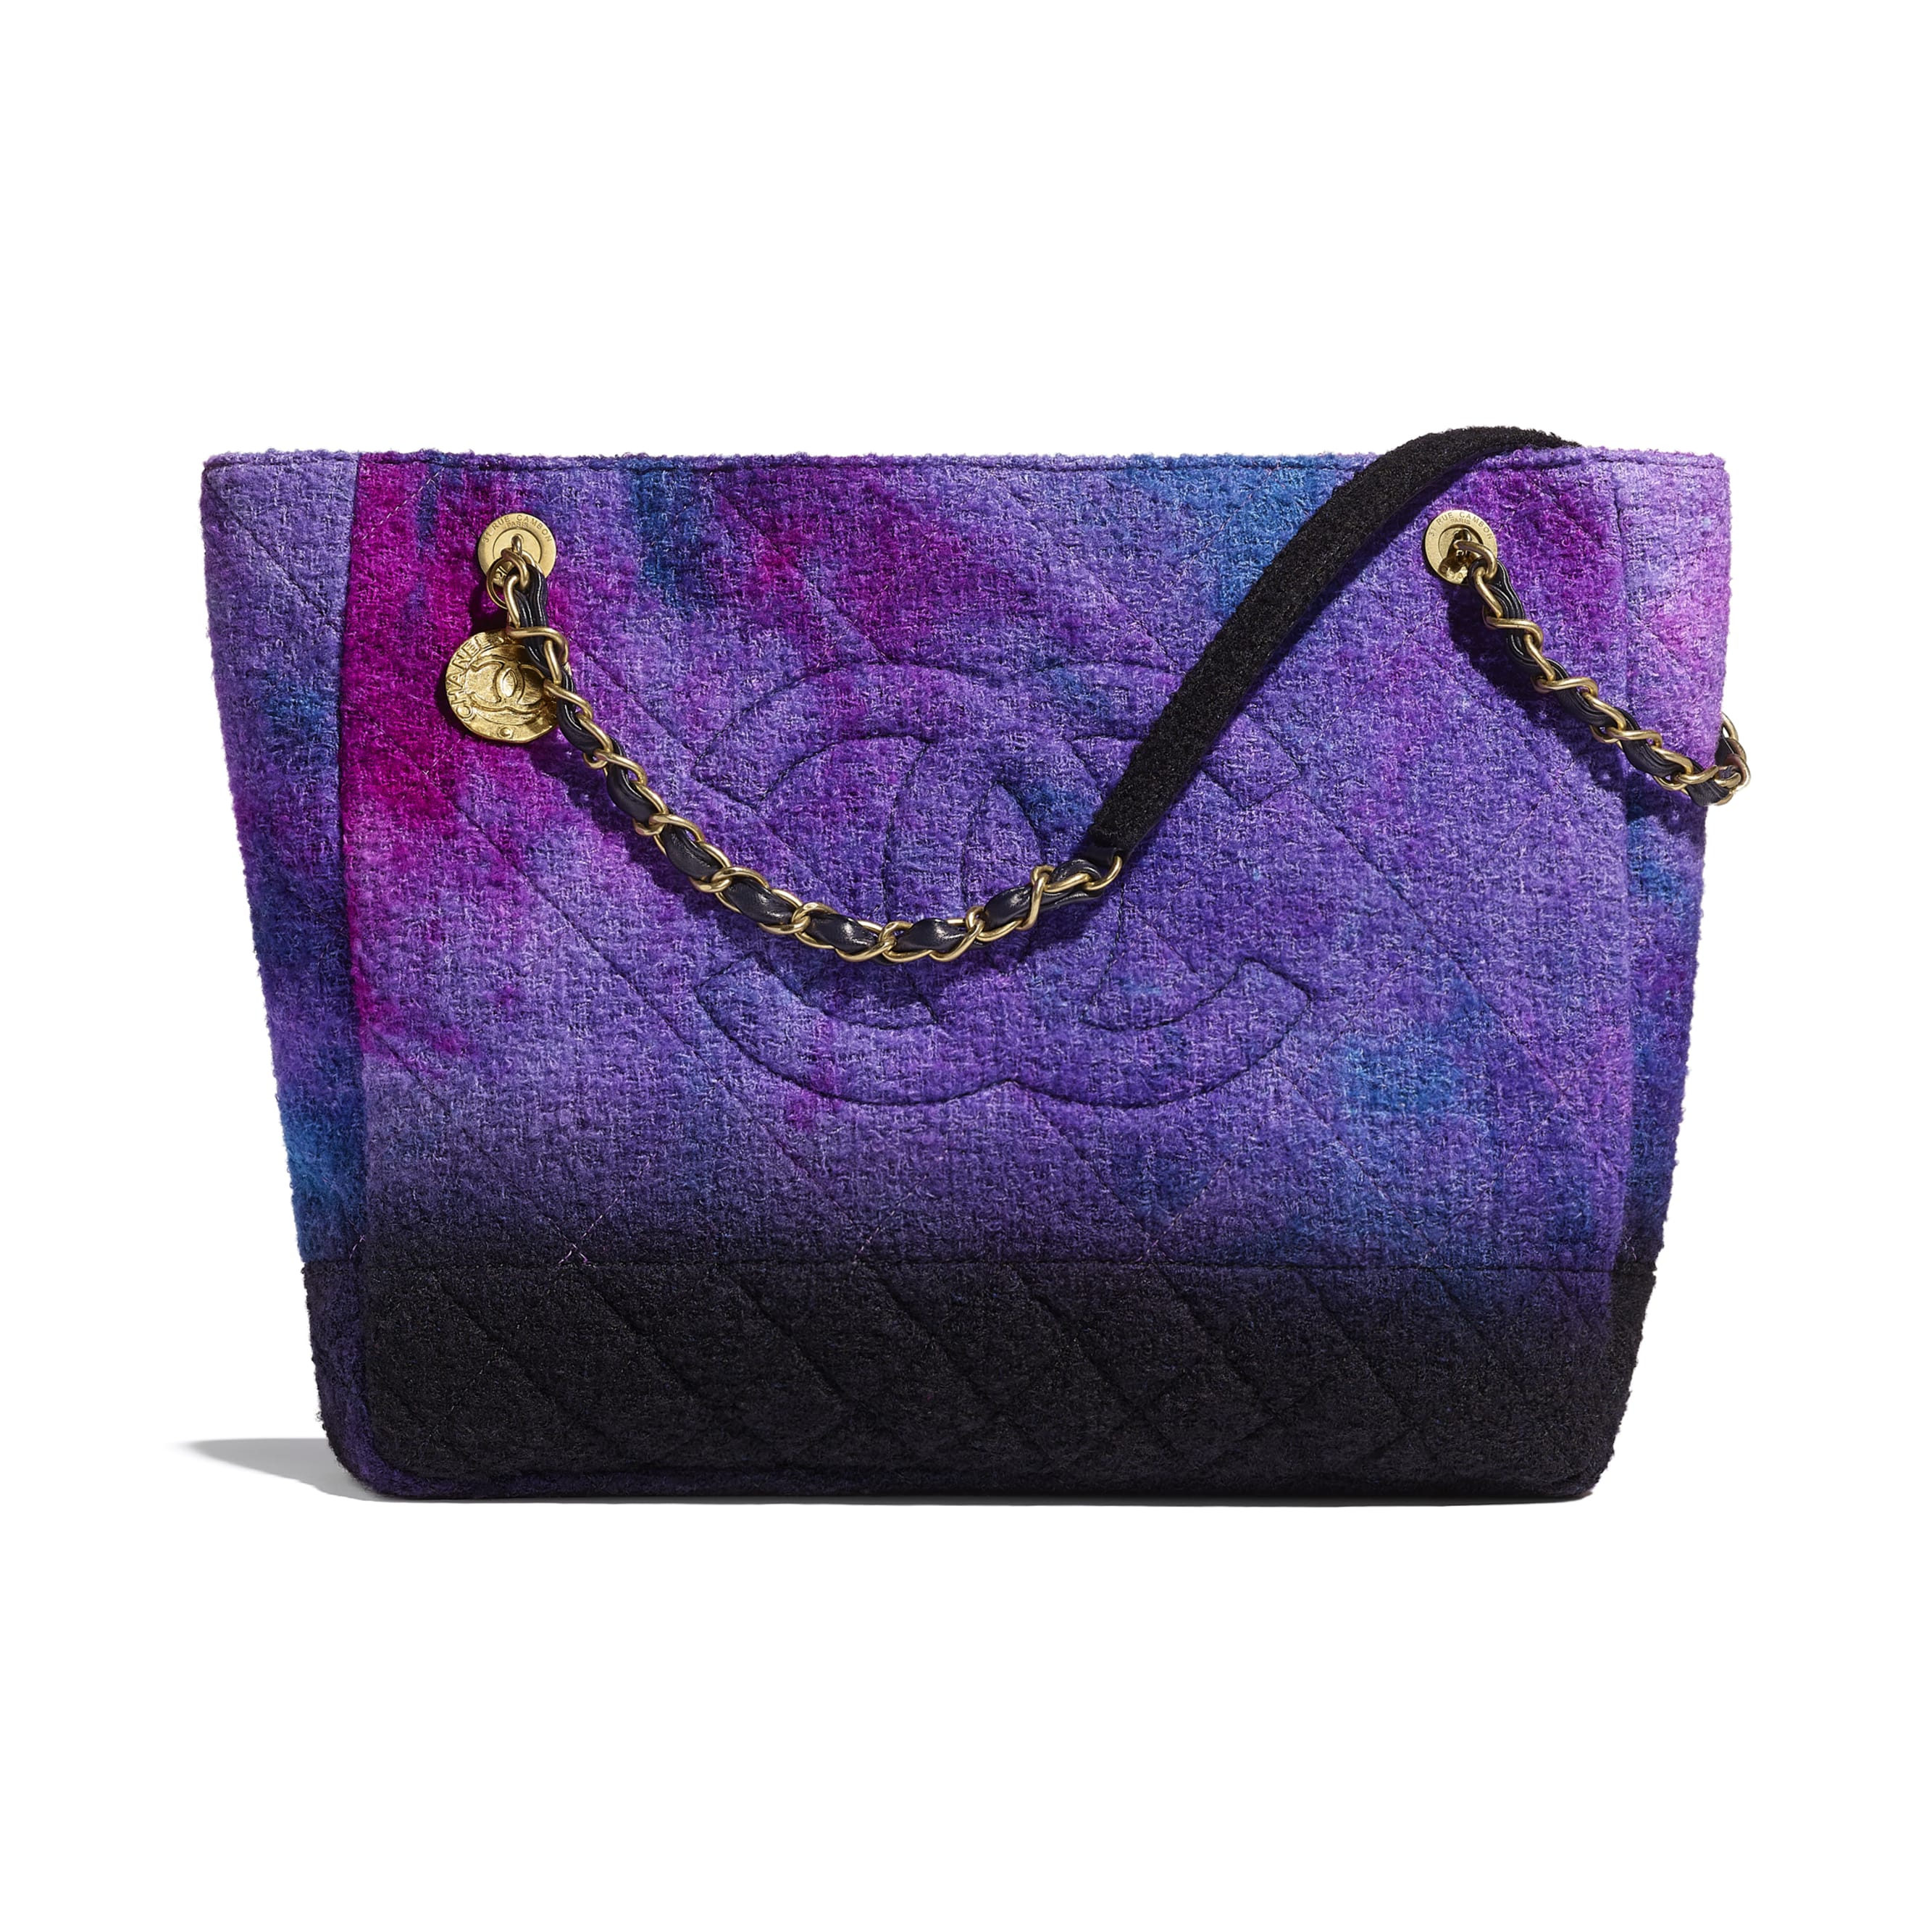 Large Tote - Purple, Black & Blue - Wool Tweed & Gold-Tone Metal - CHANEL - Default view - see standard sized version